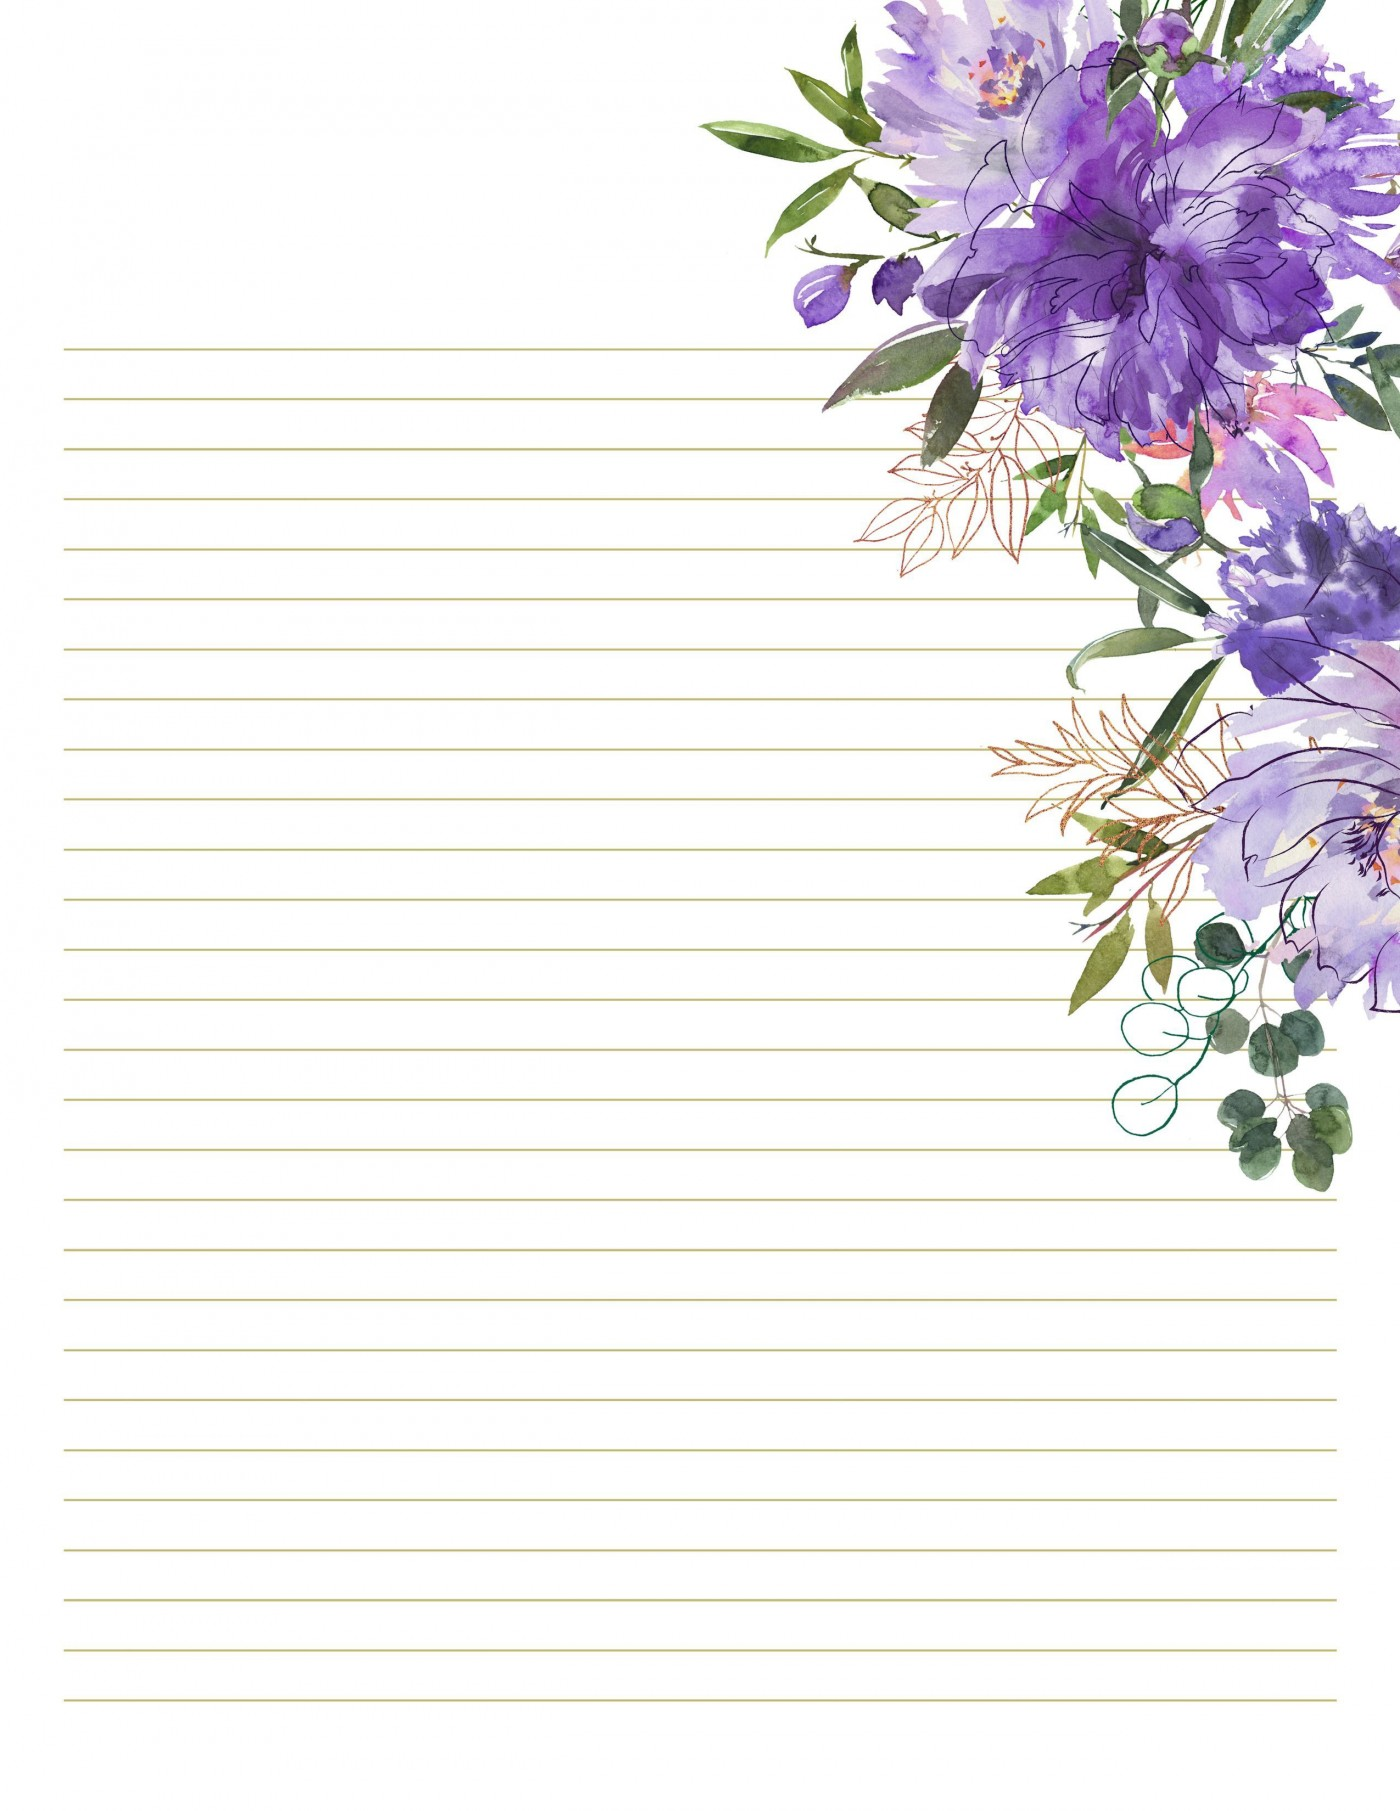 003 Formidable Free Printable Stationery Paper Template Photo 1400